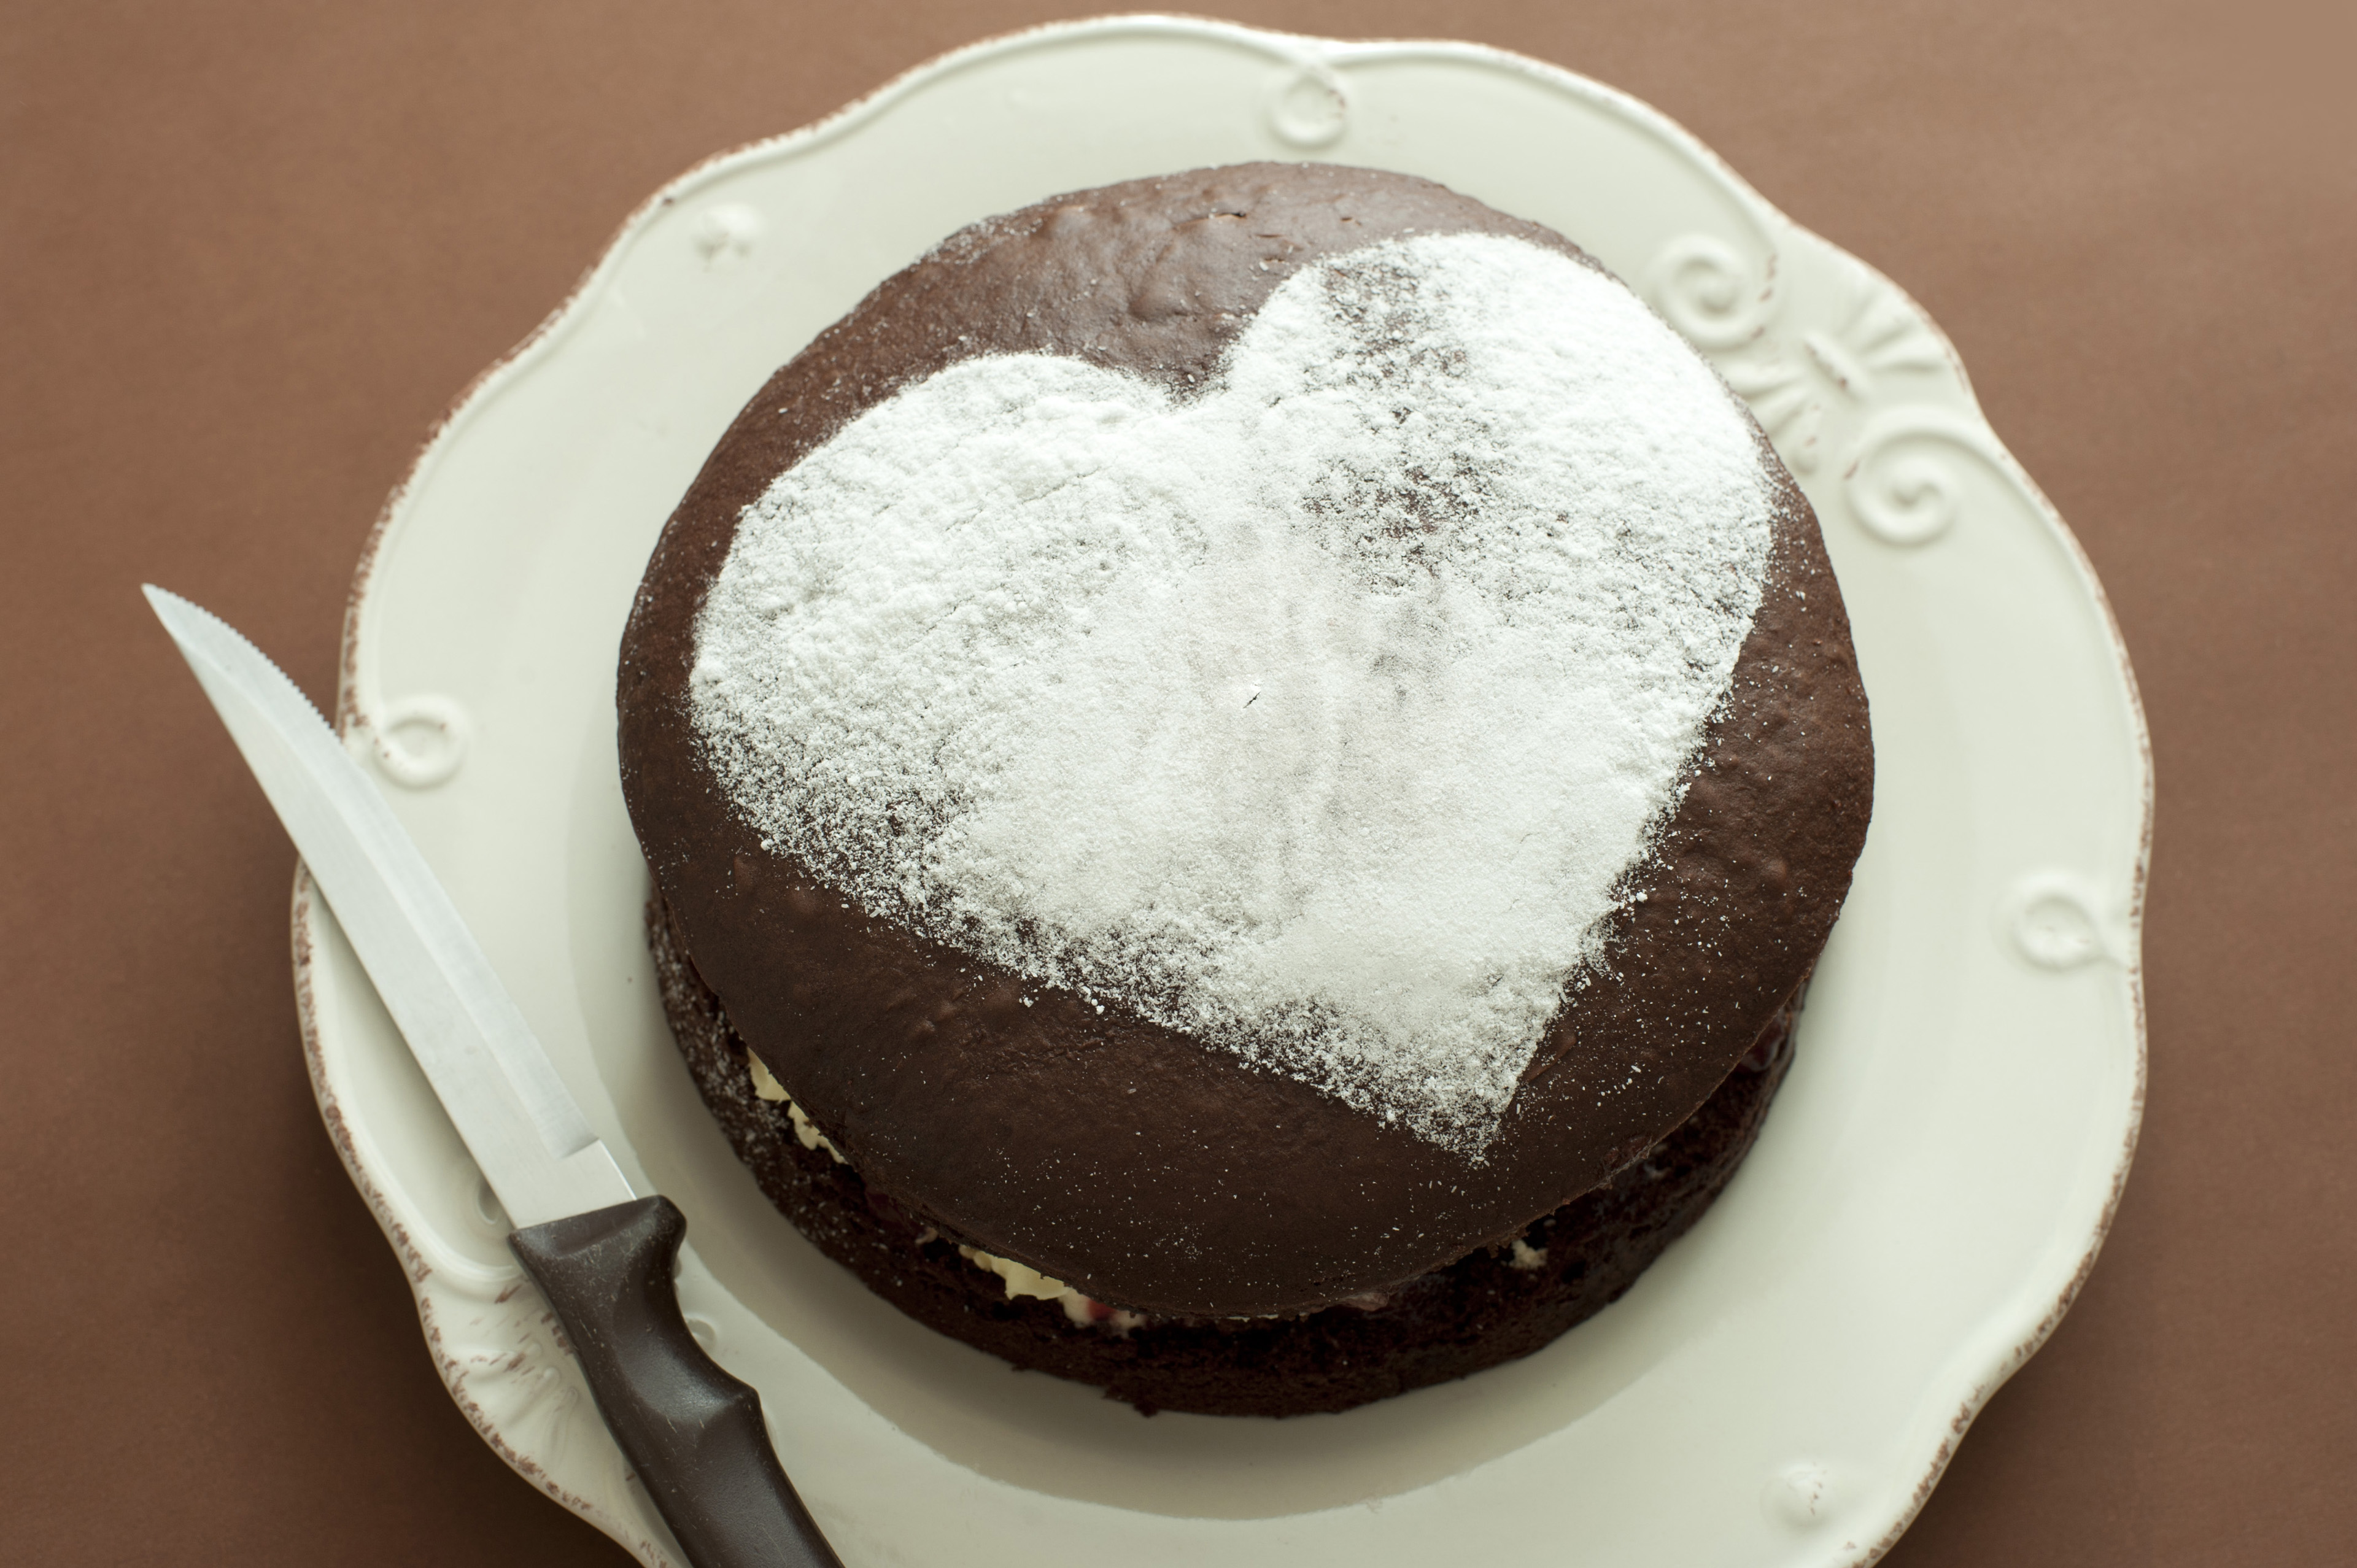 Close up Valentine Brown Cake on Plate with Heart Shape on Top. Isolated on Brown Background.